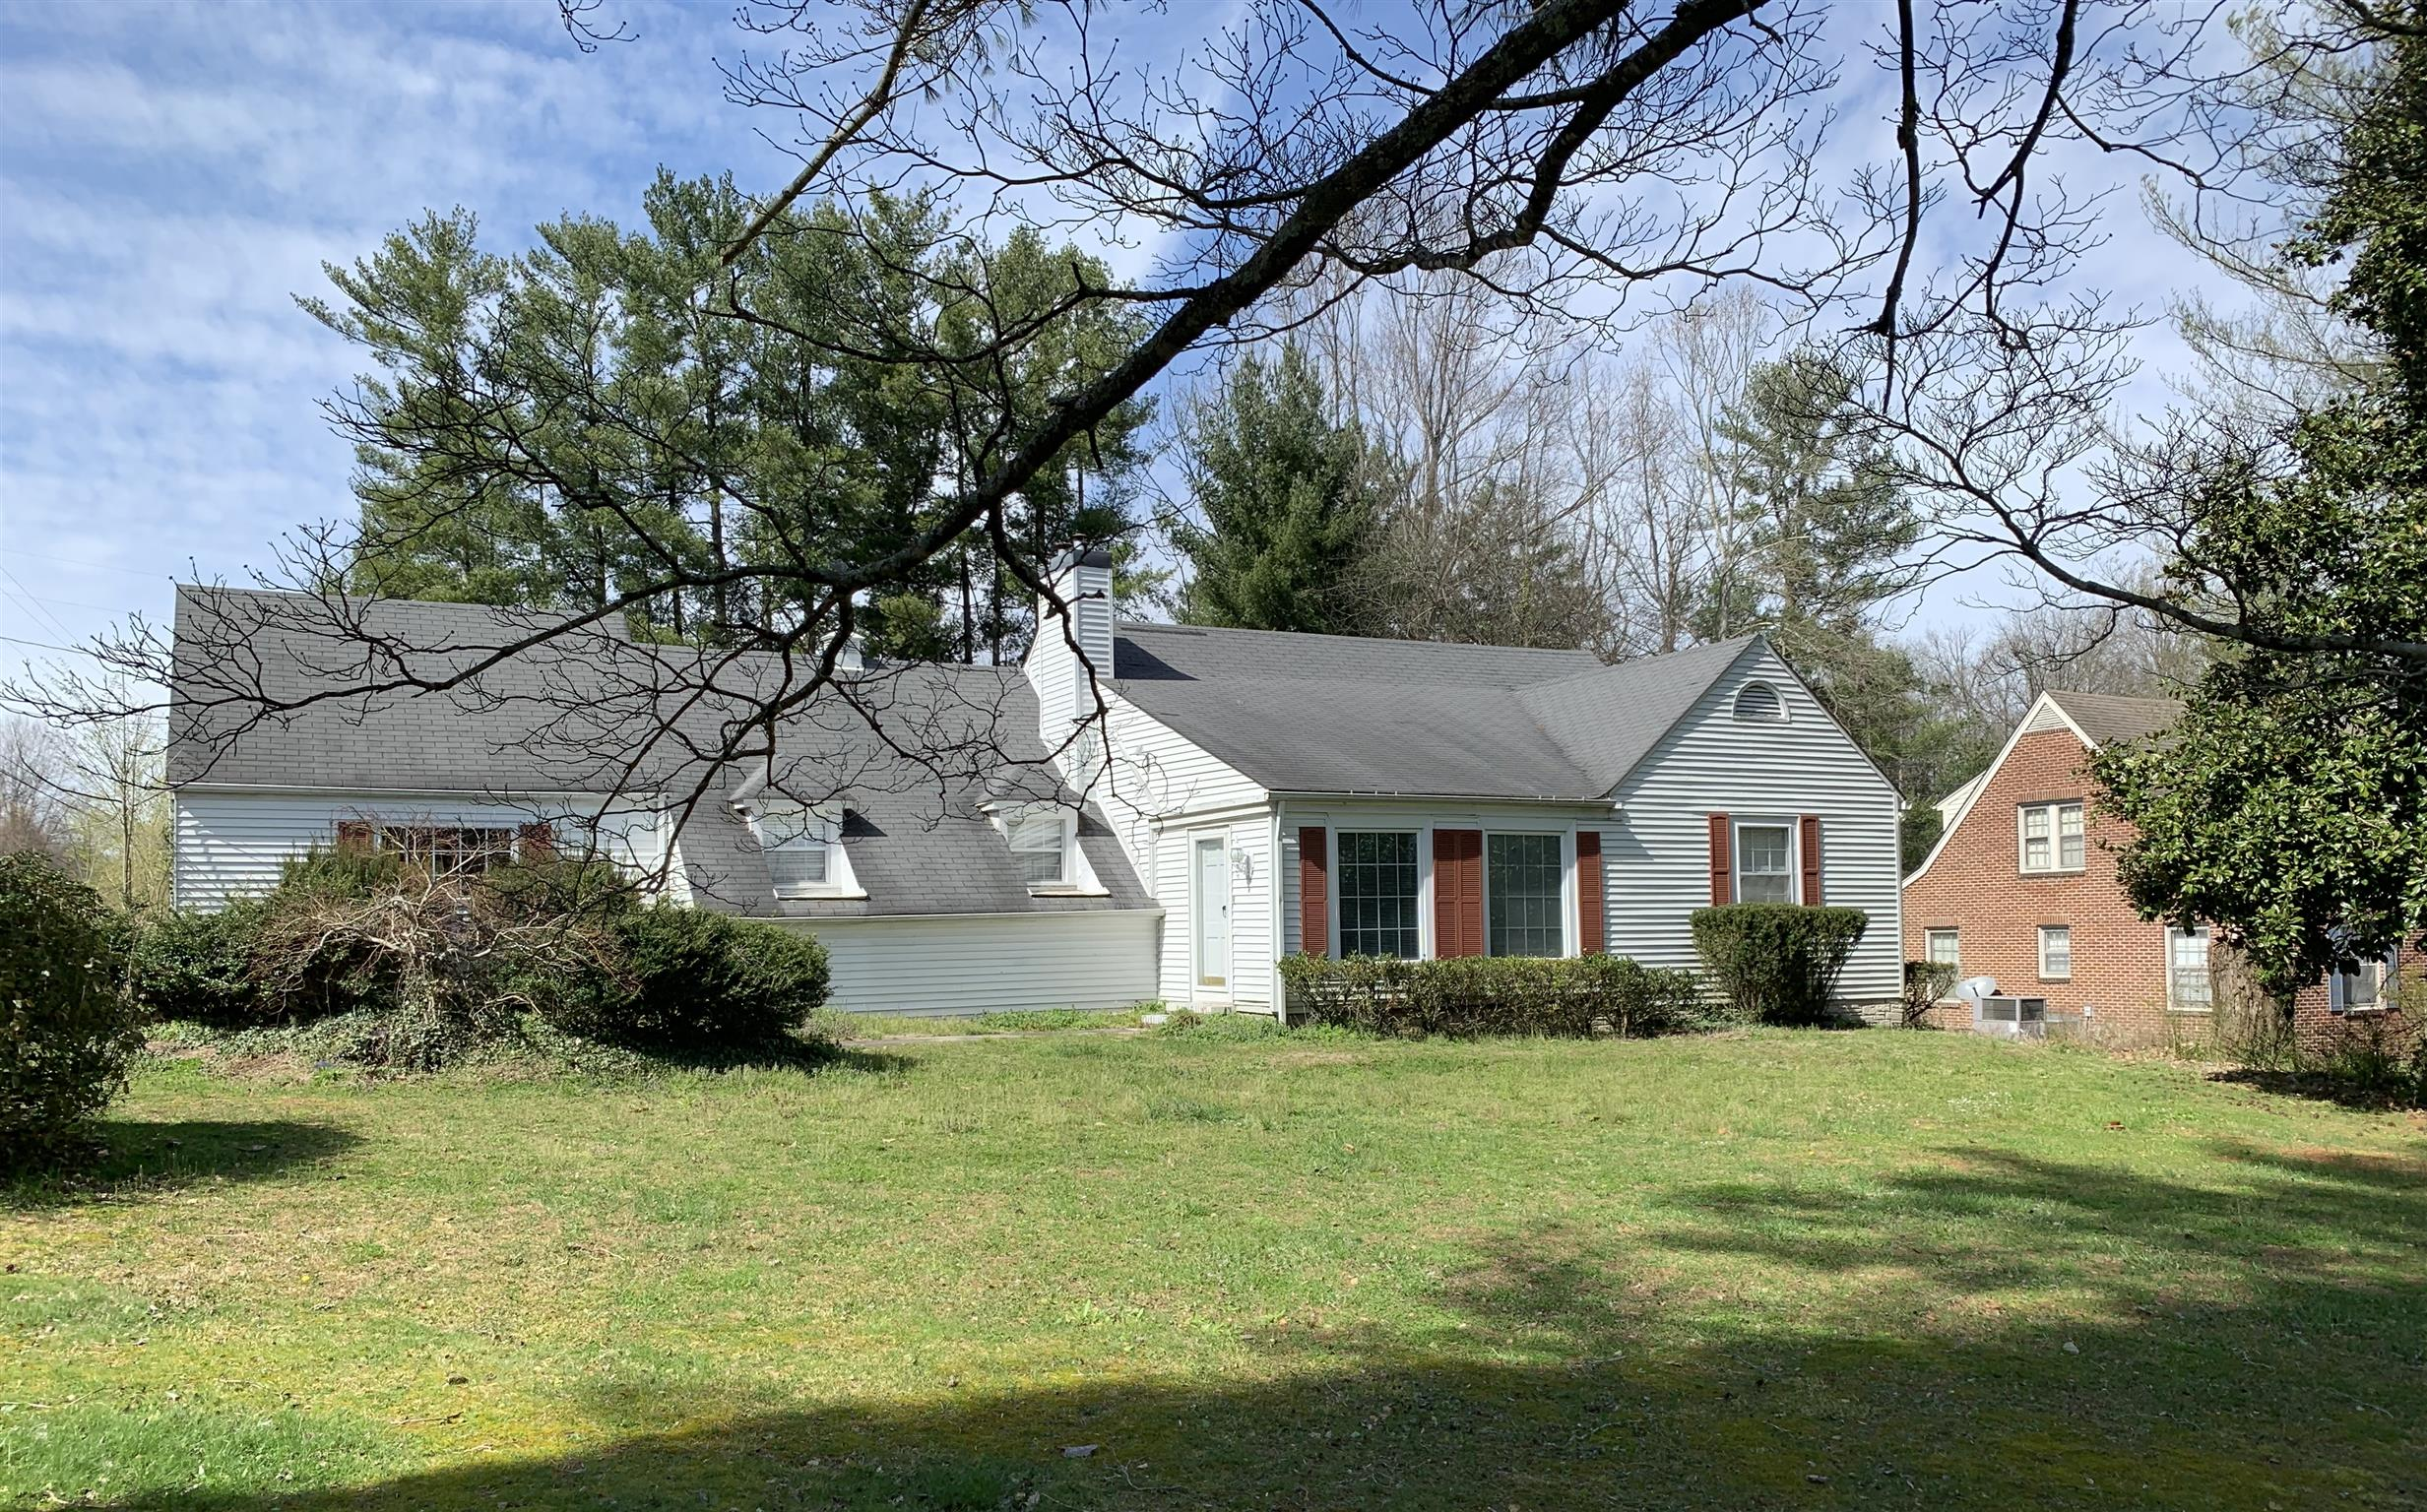 220 Morrison St, McMinnville, TN 37110 - McMinnville, TN real estate listing